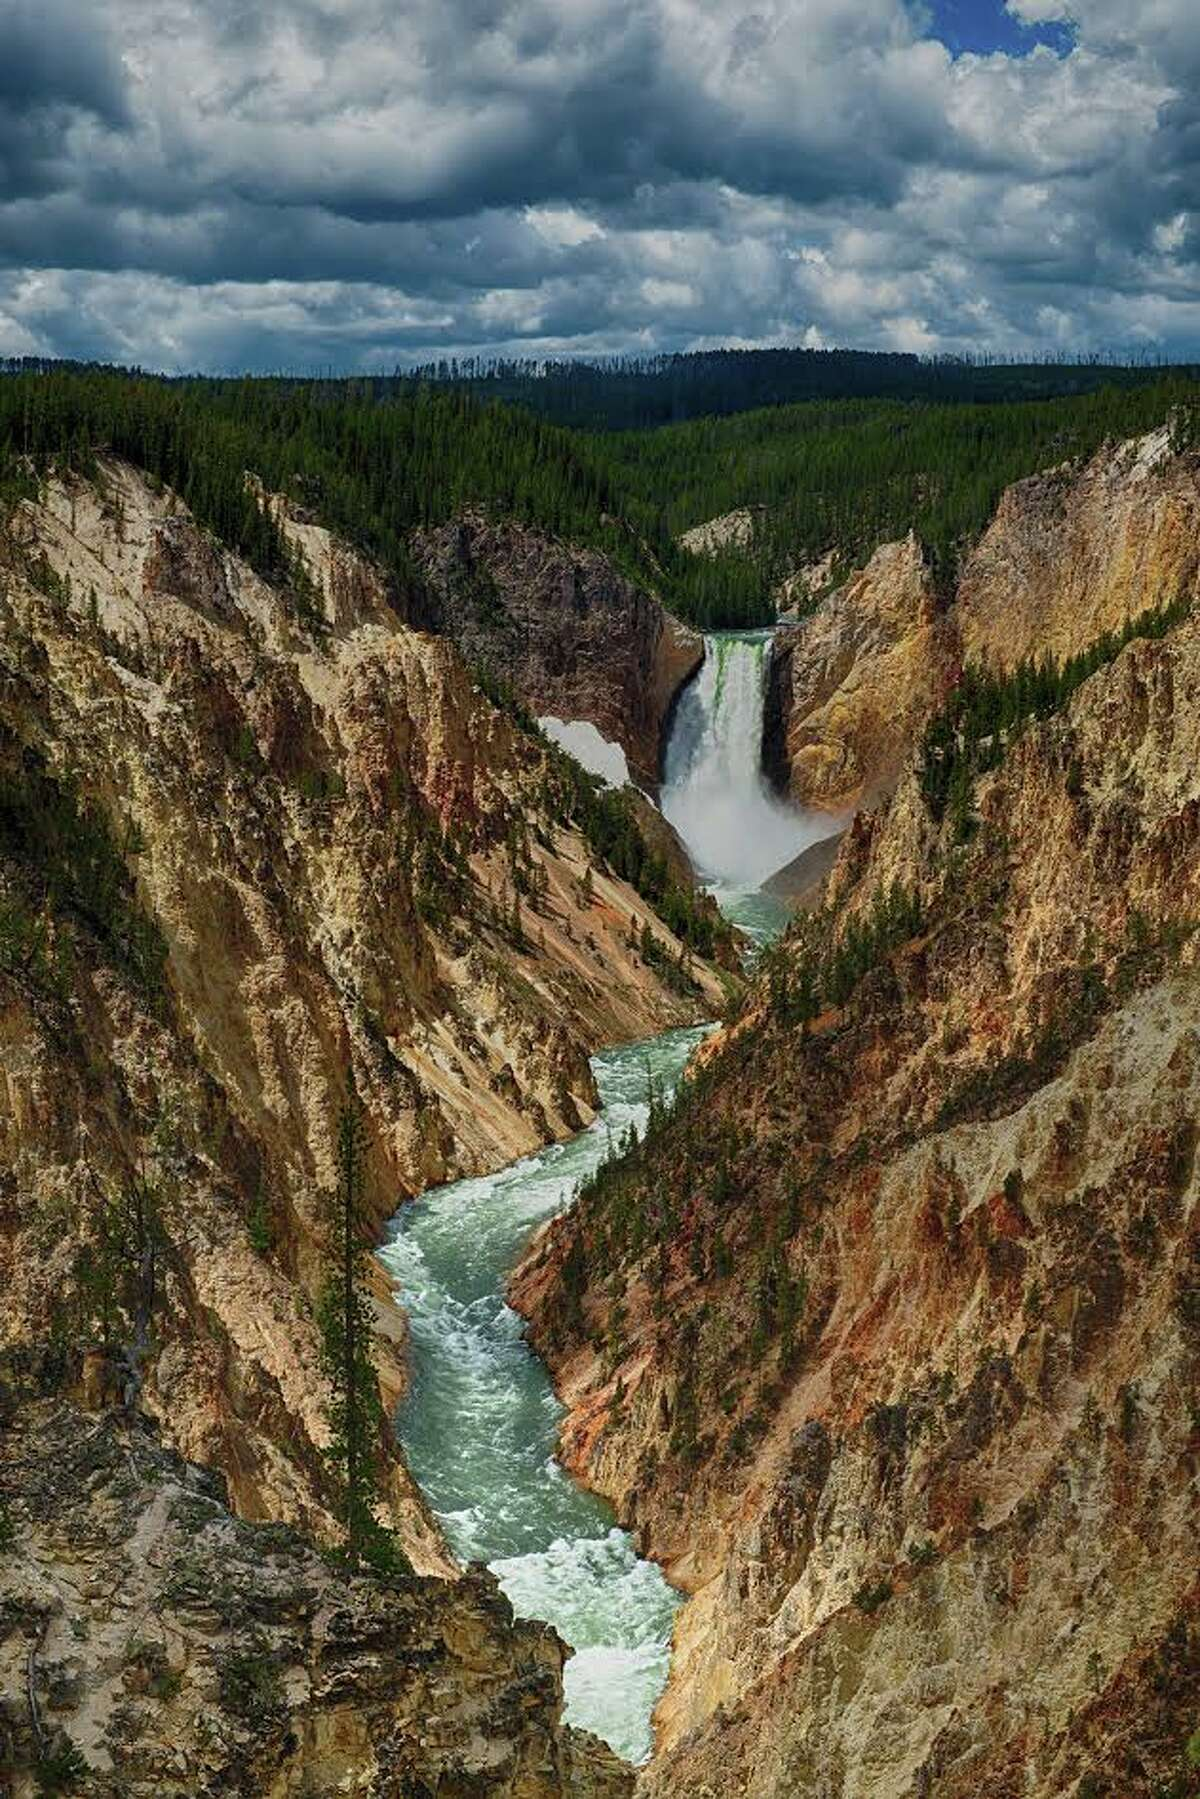 Cheapest travel destinations around the world: These are the perfect remedy to your wanderlust, without having to hurt your wallet. 1) Yellowstone National Park Why: Weeklong admission to the park is $30.